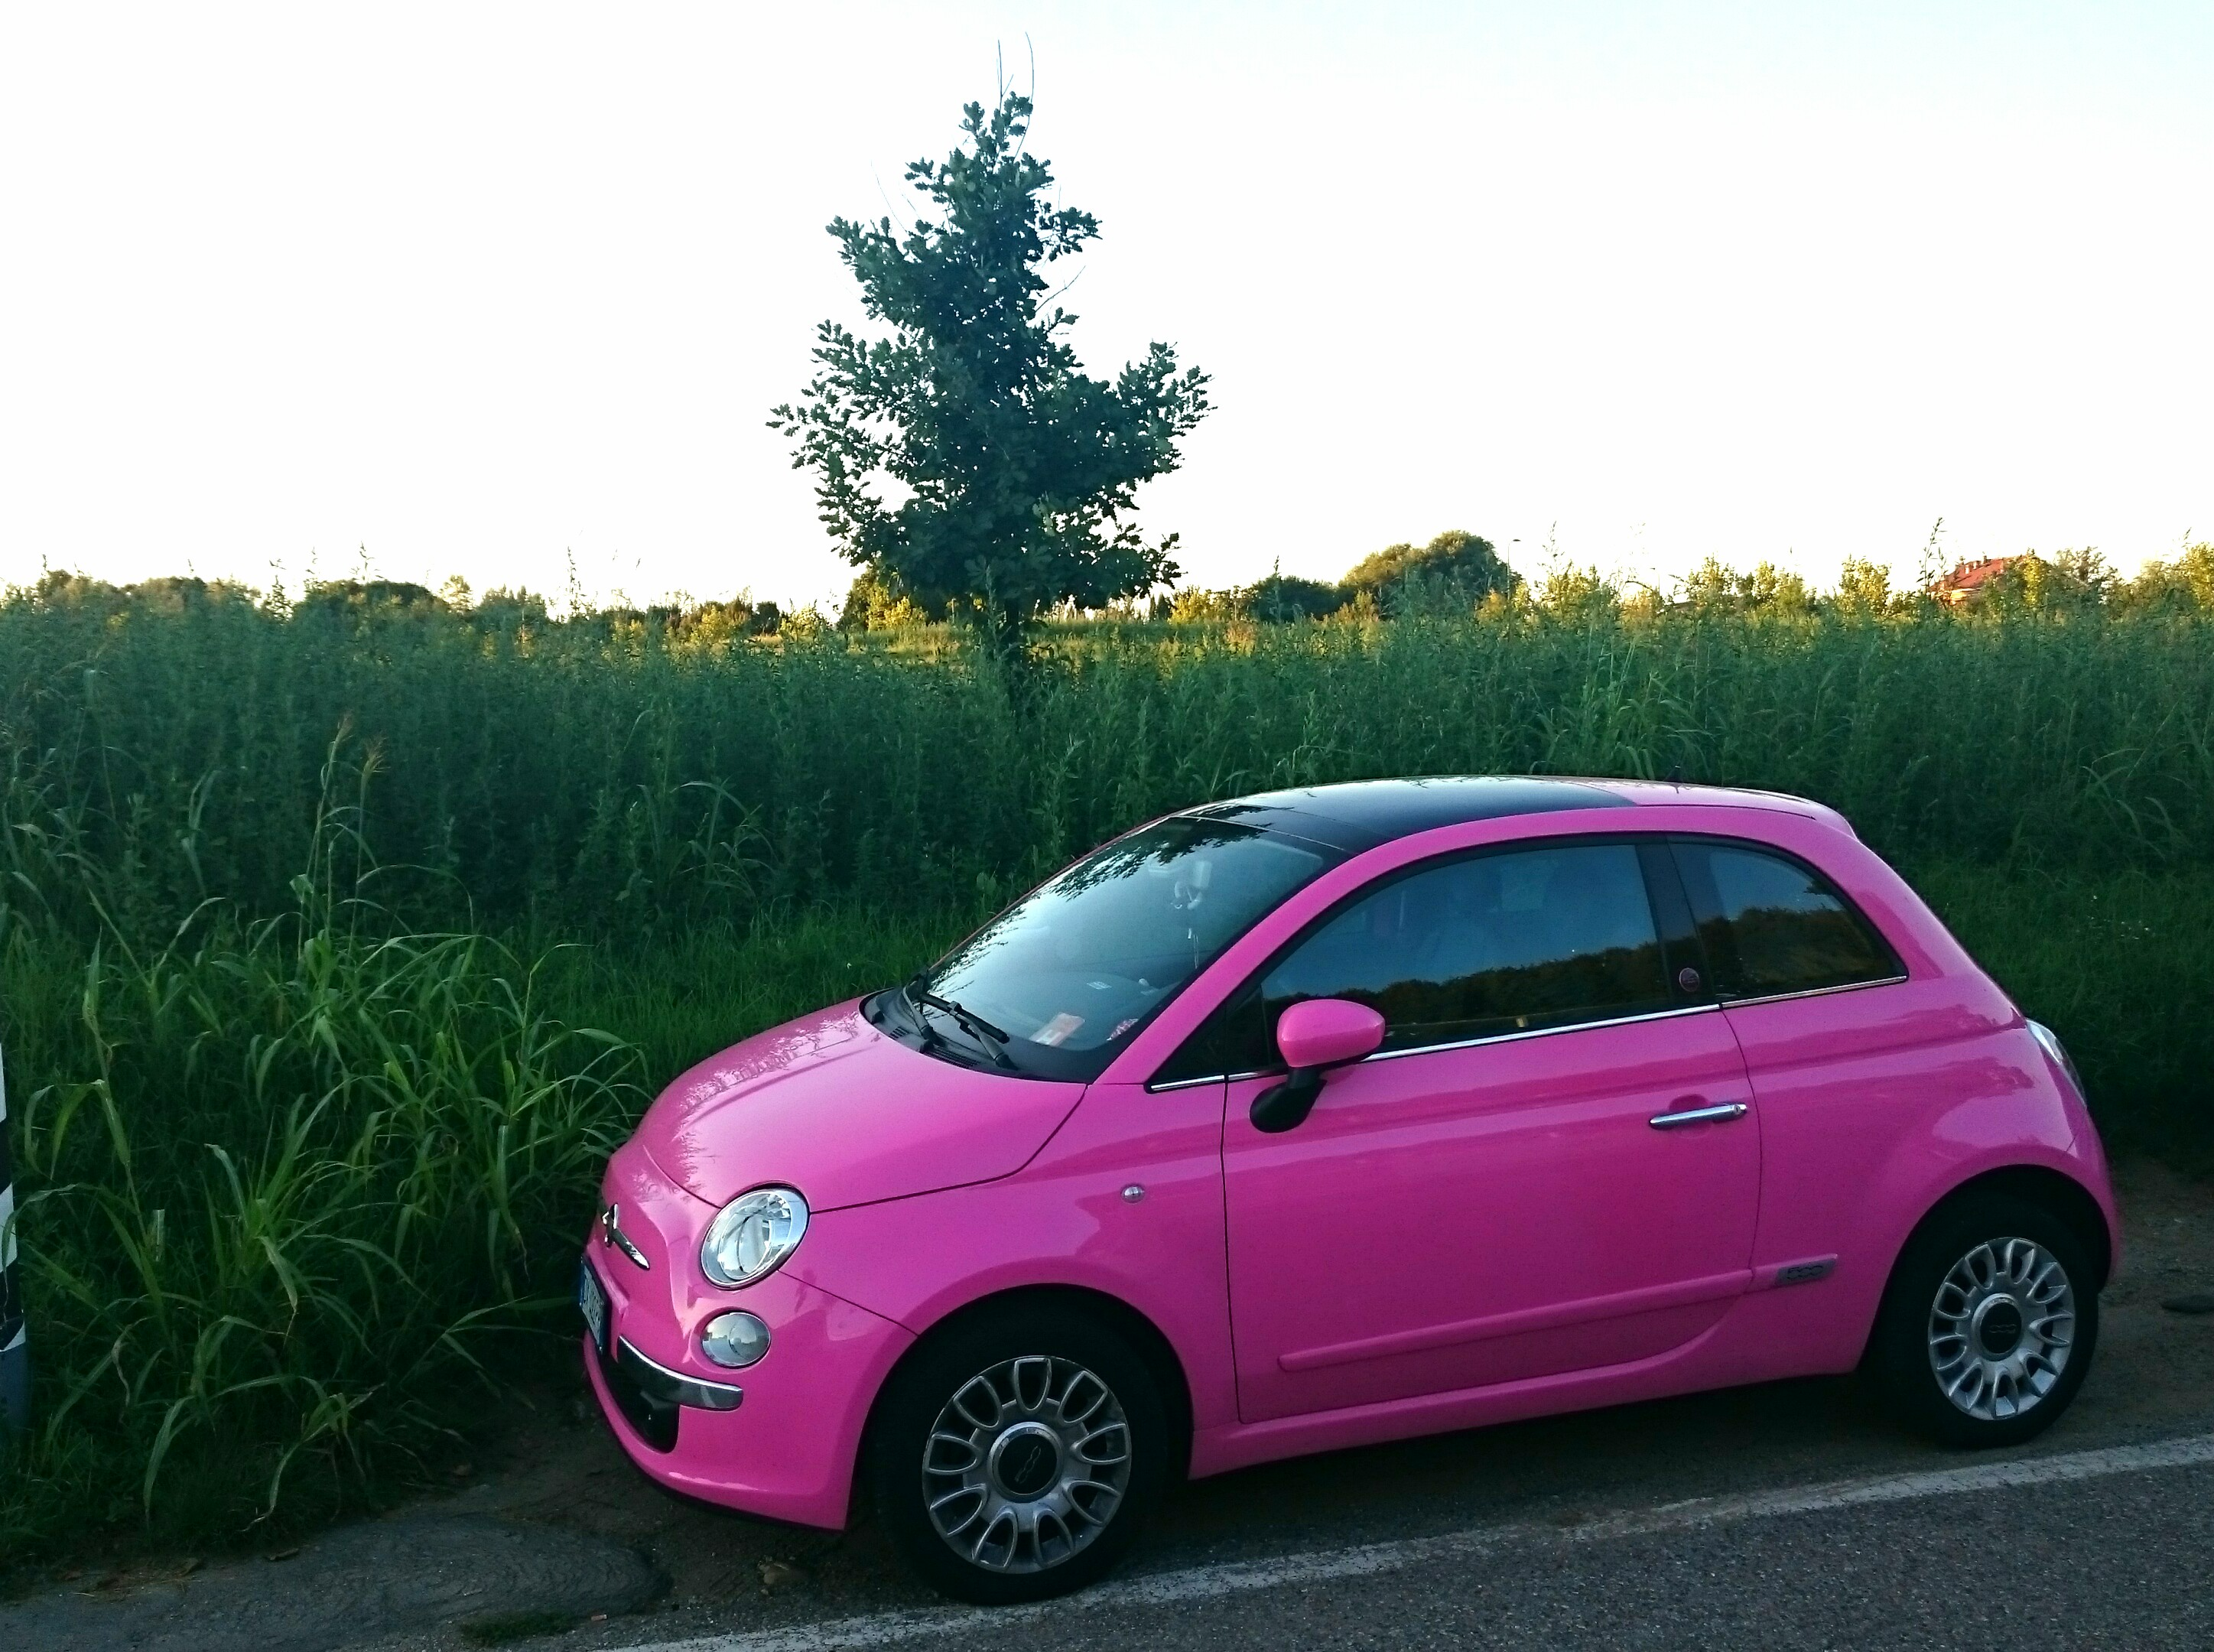 file 15 italy fiat 500 pink premium hatchback in milan jpg wikimedia commons. Black Bedroom Furniture Sets. Home Design Ideas